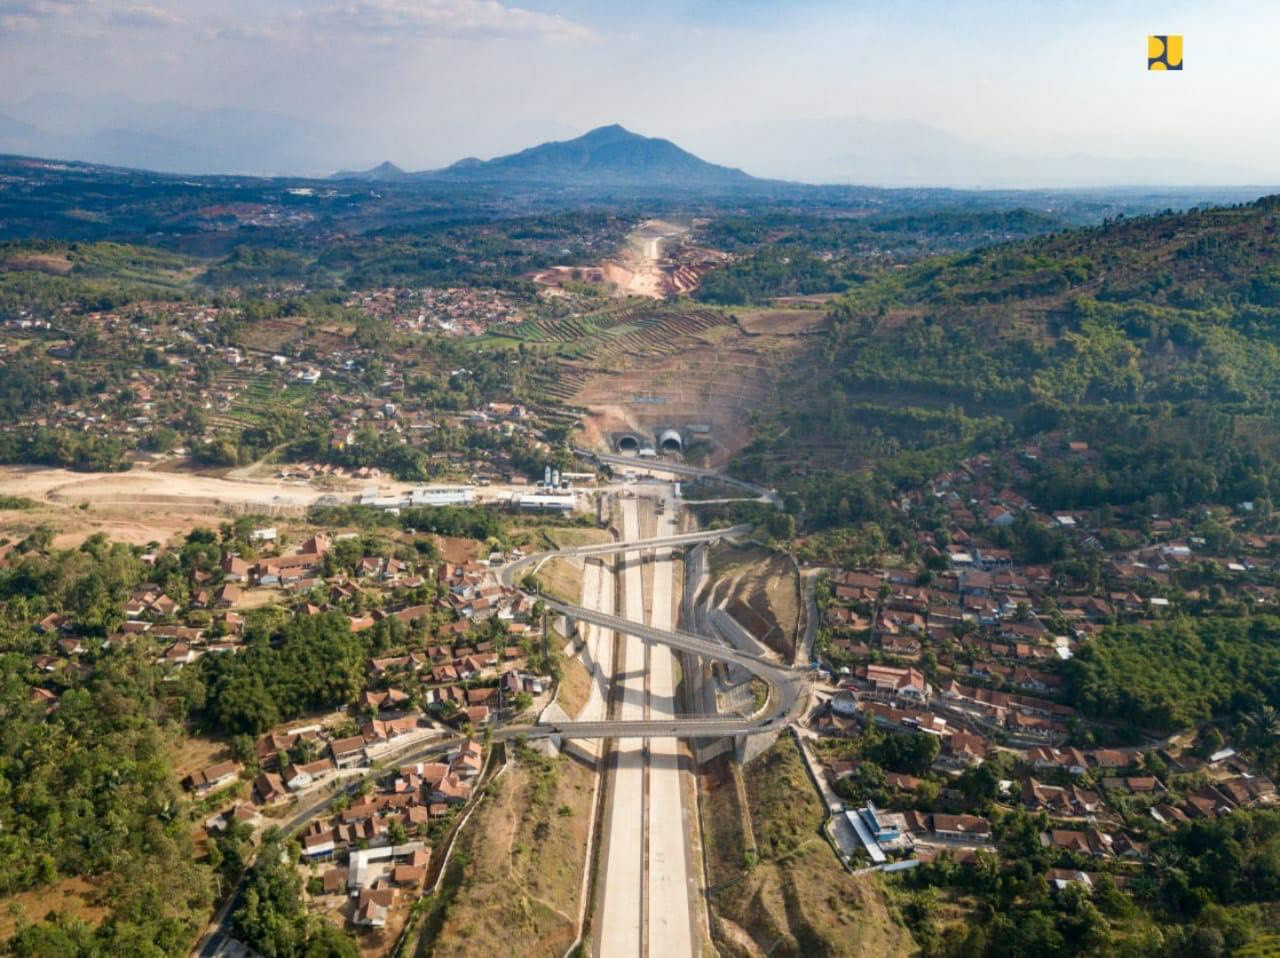 Cisumdawu toll road to link Bandung with Kertajati airport in 2020